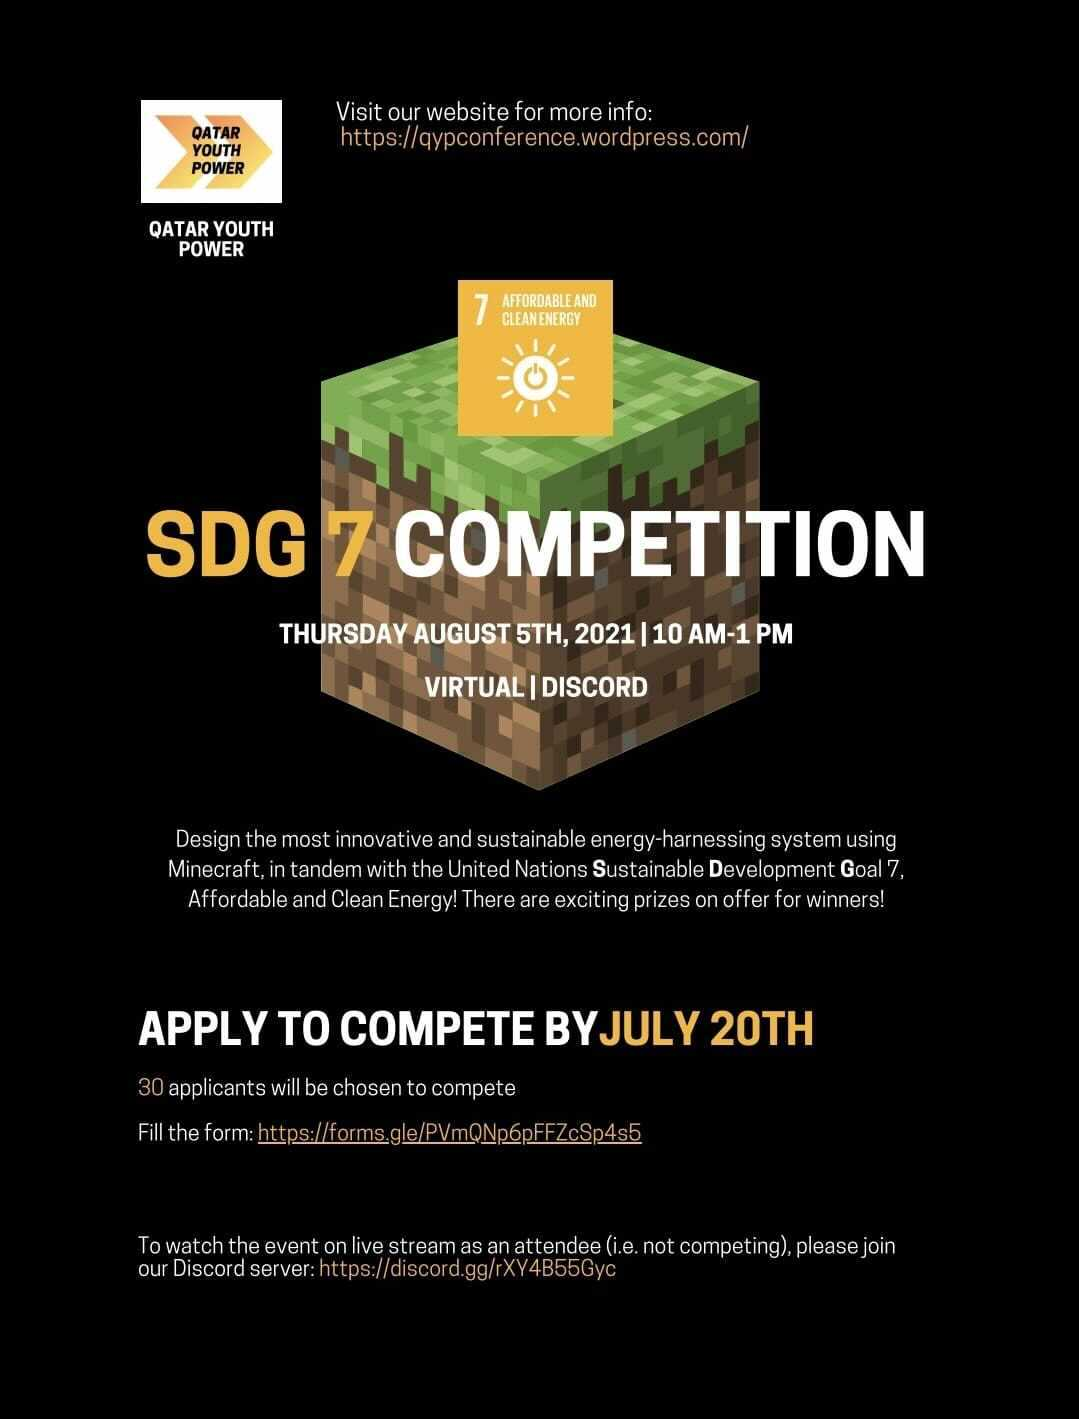 QYP SDG 7 Competition: sustainable energy-harnessing system design through MINECRAFT!